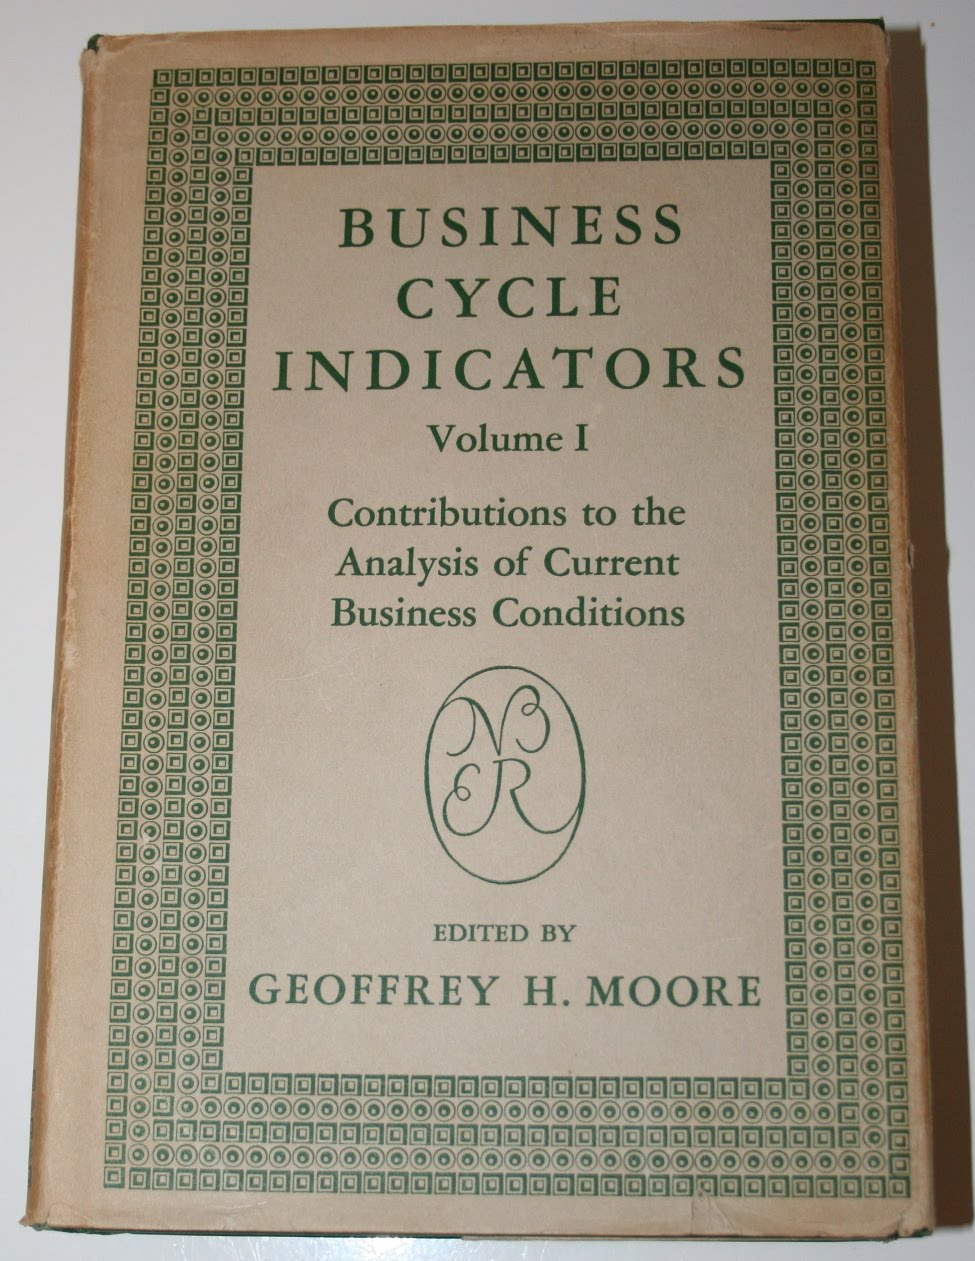 analyzing business cycle essay geoffrey h honoring modern moore Philip a klein a reprint of 1990 book collecting essays from various economists influenced by moore's analysis of business cycles.